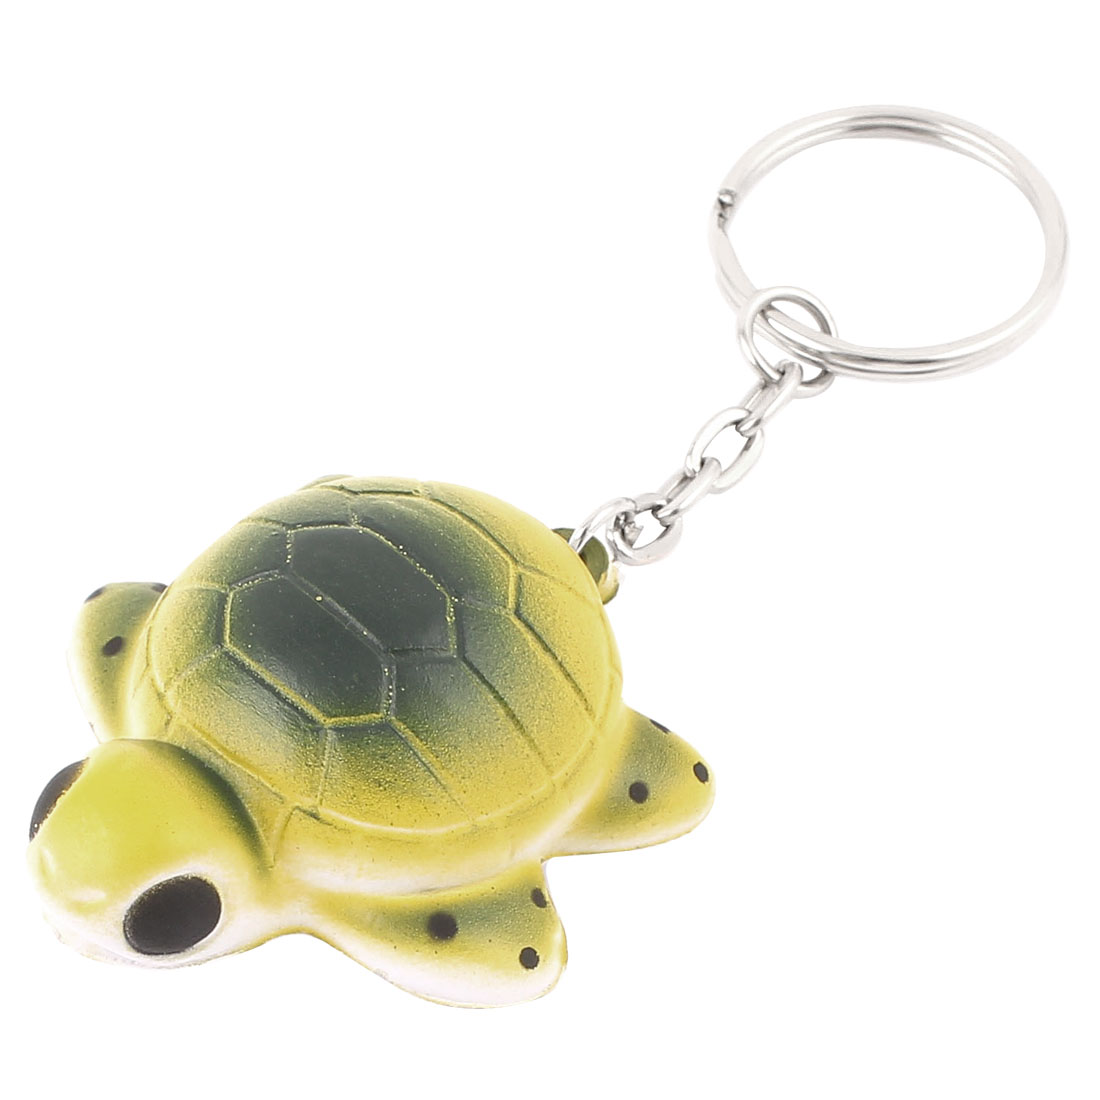 Rubber Turtle Shaped Pendant Split Ring Keychain Keyring Key Holder Yellow